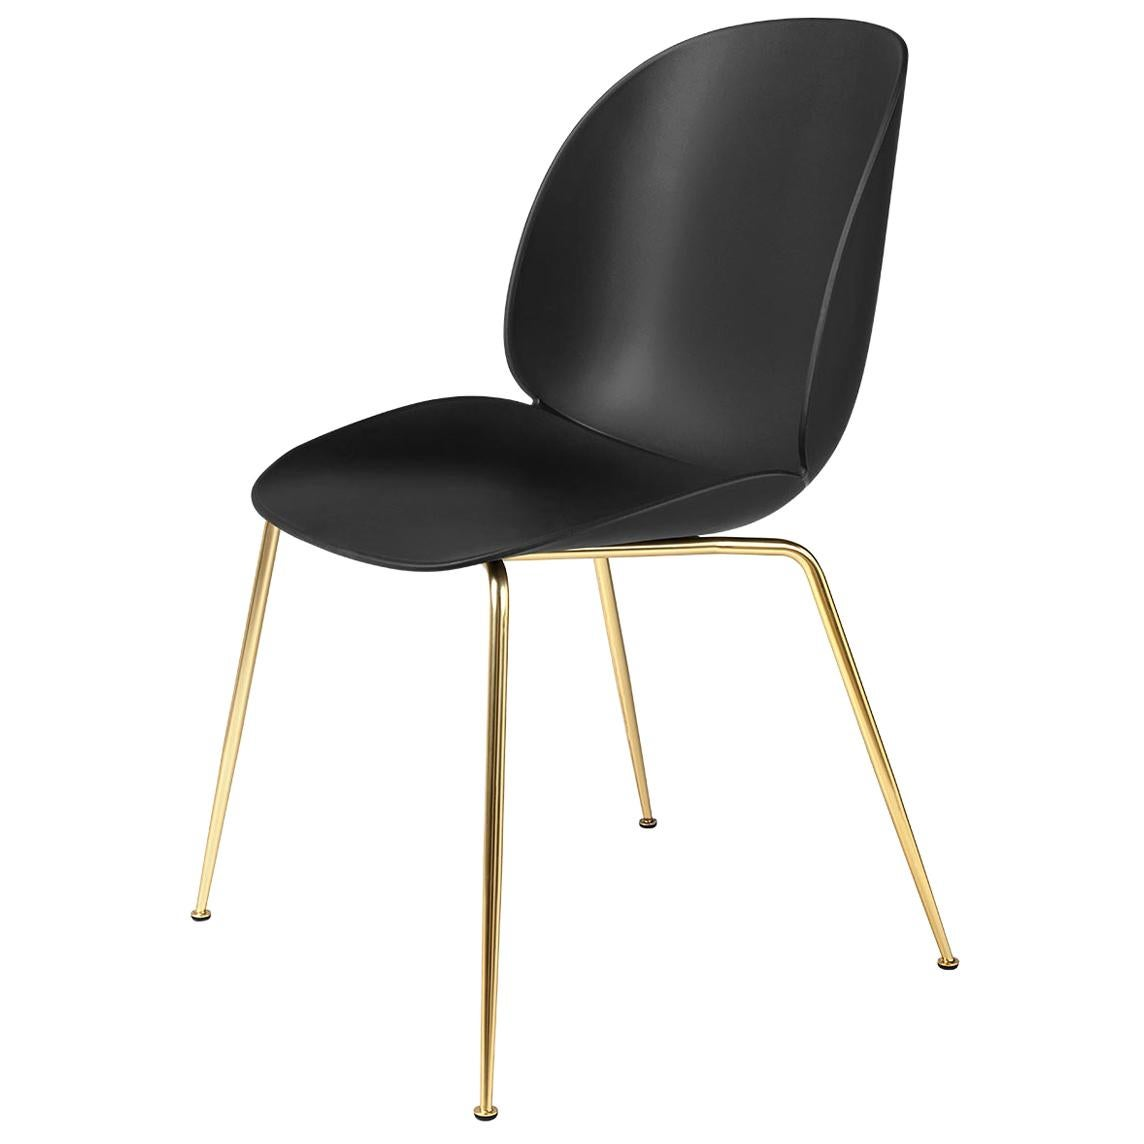 Beetle Dining Chair, Un-Upholstered, Conic Base, Brass Semi Matte